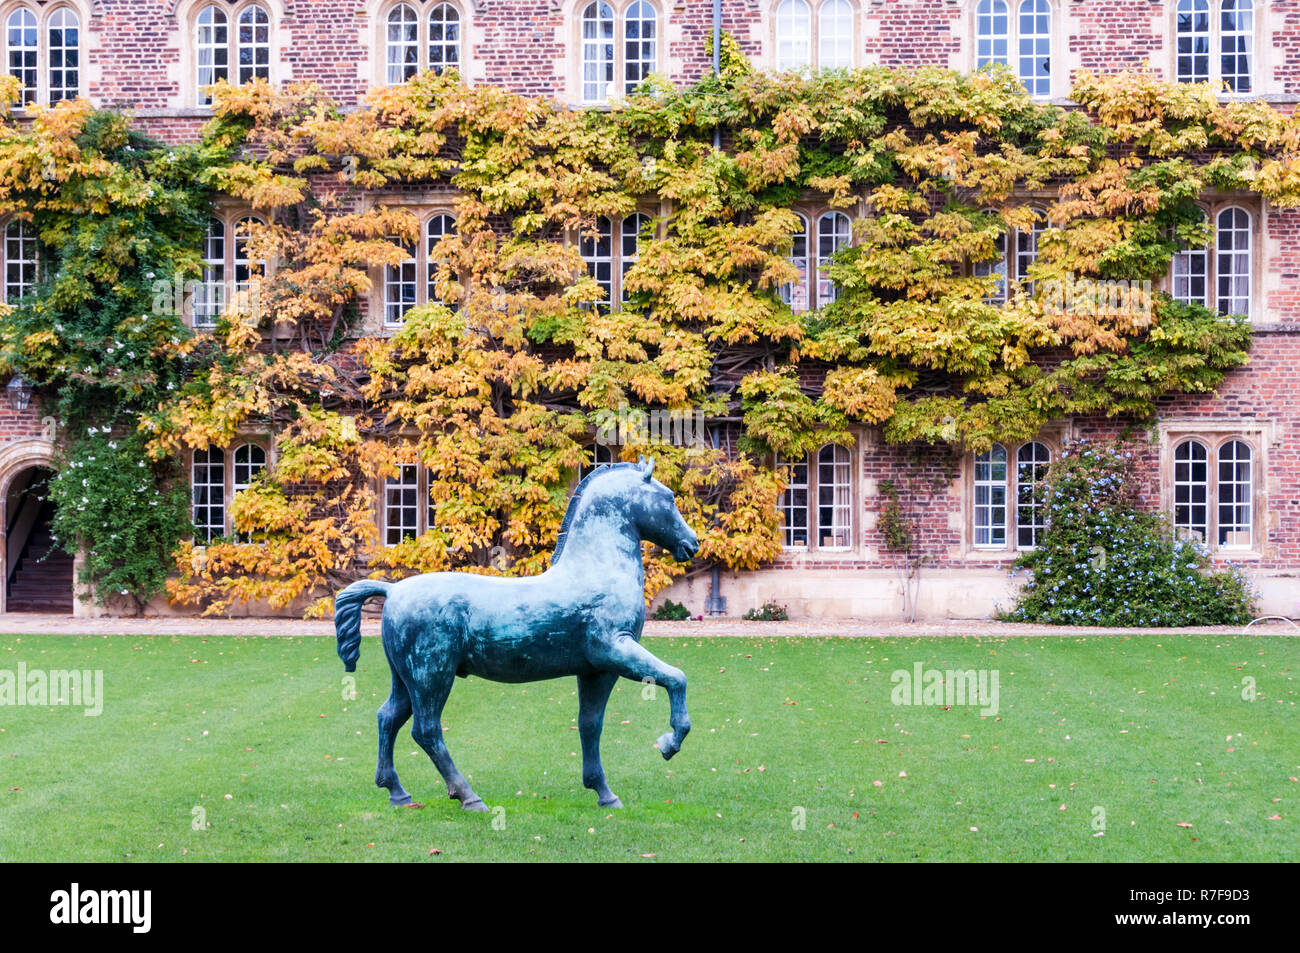 The First Court of Jesus College, Cambridge with Bronze Horse, a large sculpture by Barry Flanagan. Donated to the college in 2009. Stock Photo